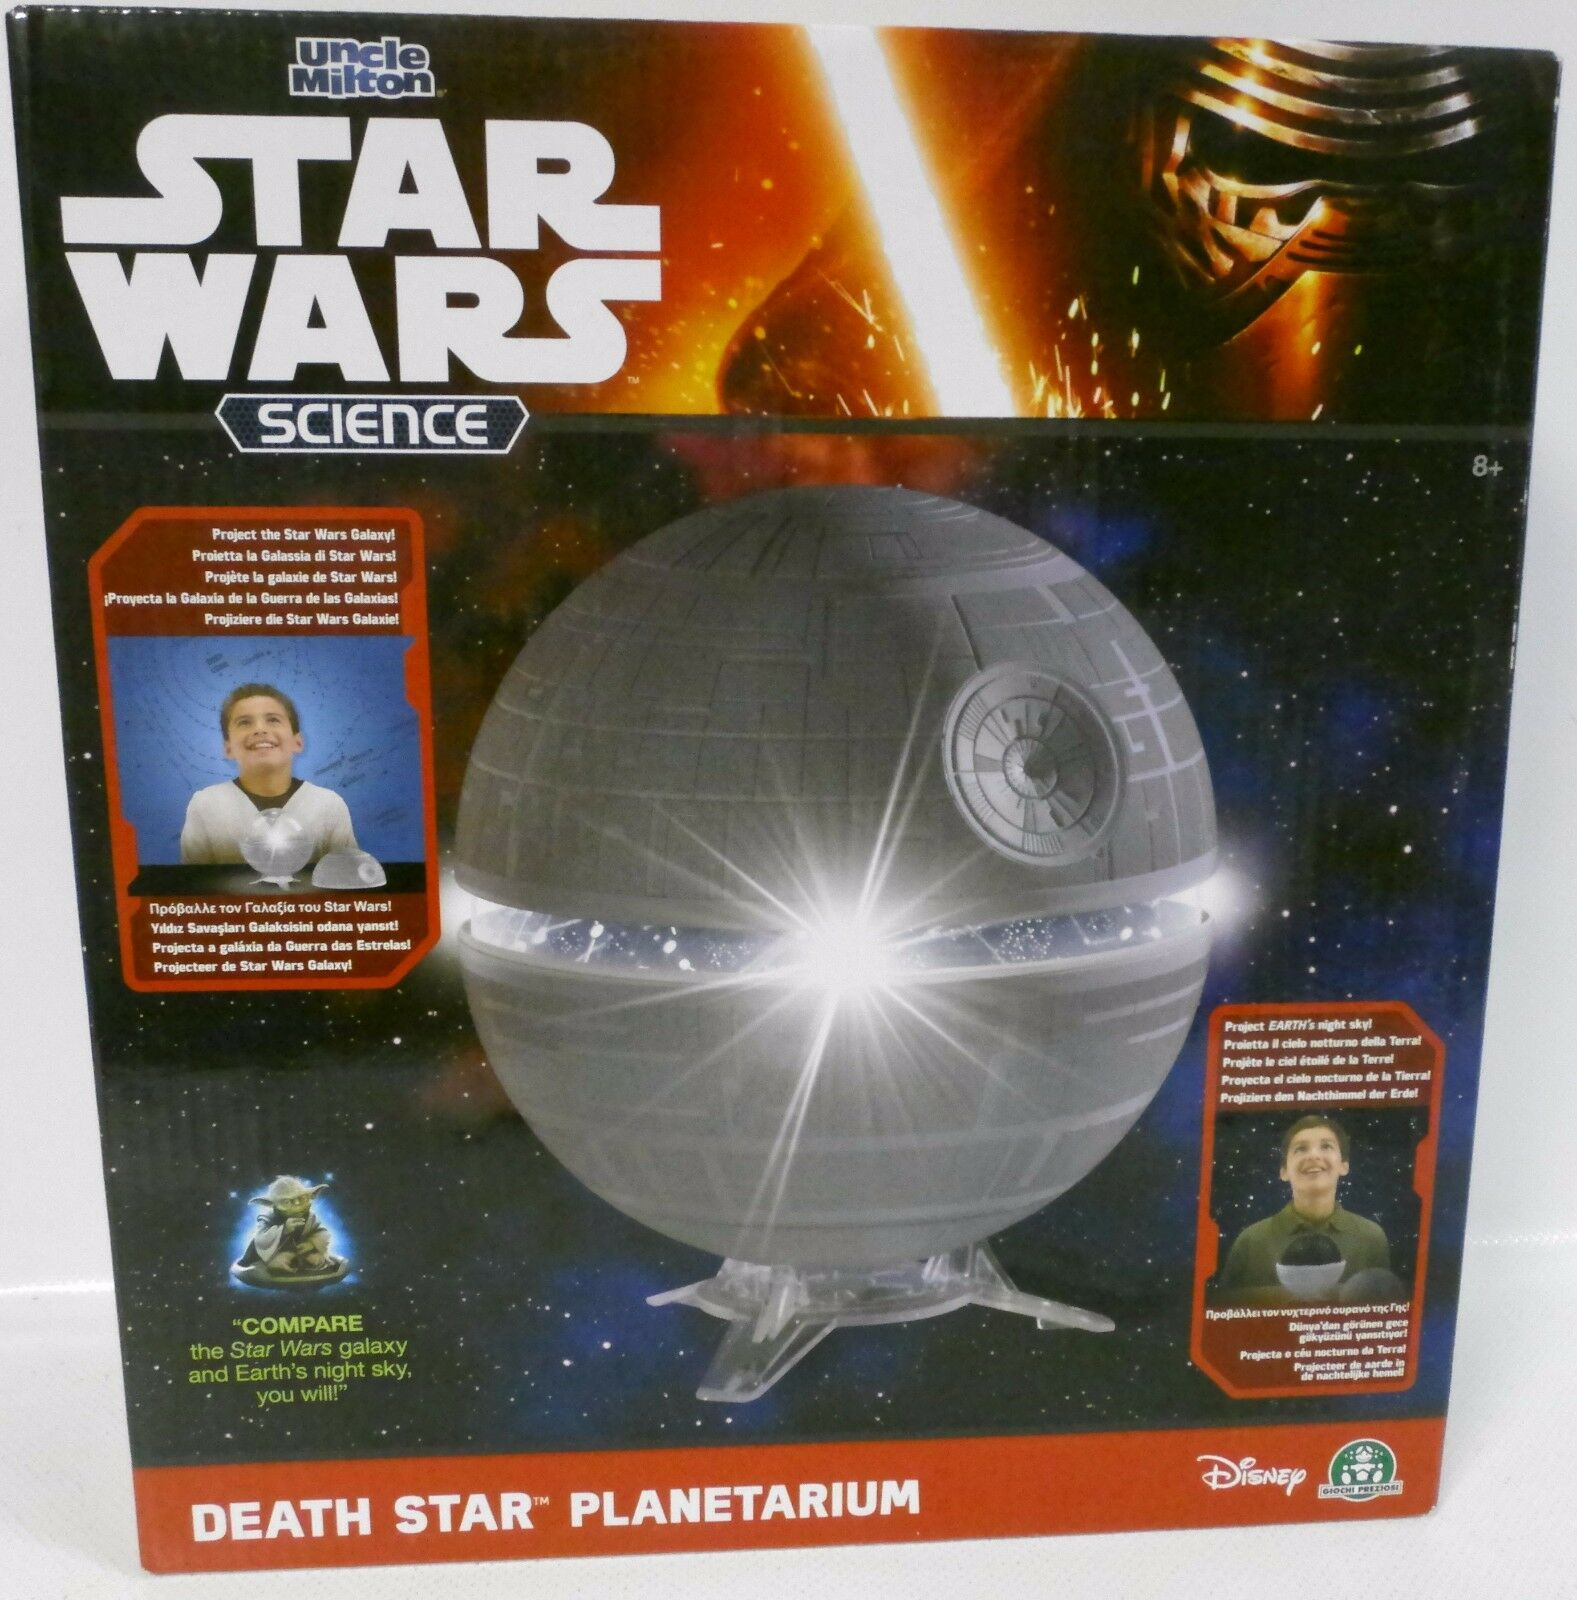 NEU STAR WARS SCIENCE - DEATH STAR Planetarium Uncle Milton OVP